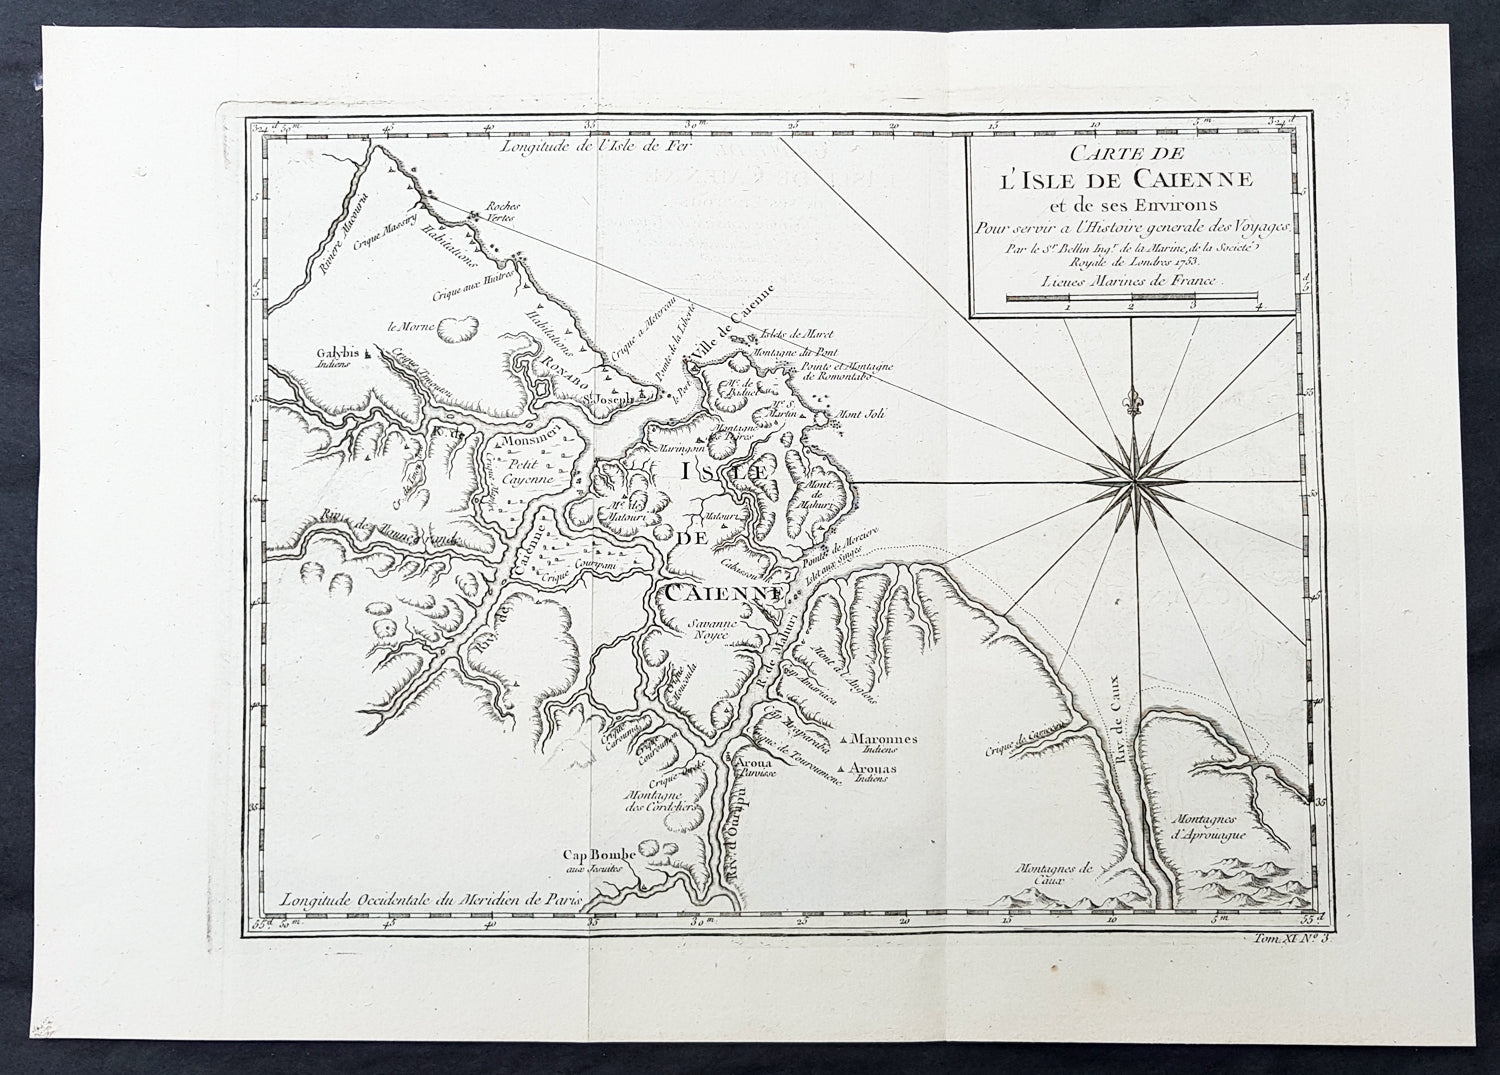 1753 Bellin Antique Map of The Island of Cayenne French Guyana